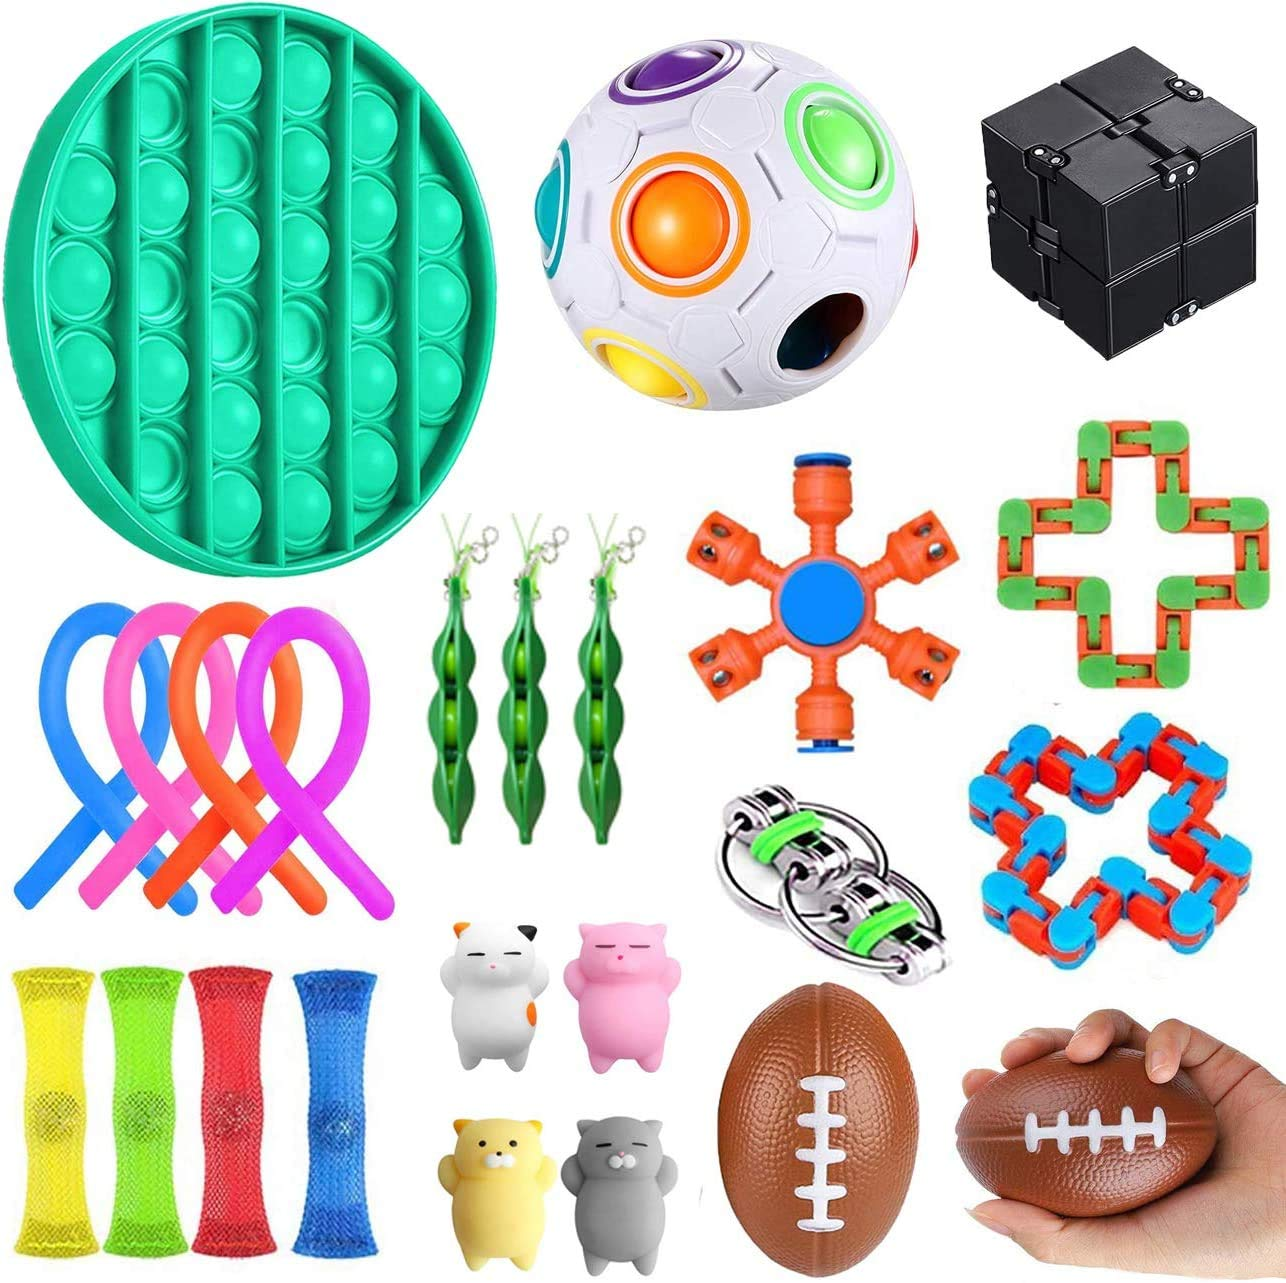 YAOJIN Sensory Toys Set,23pcs Fidget Toys for Kids and Adults, Relieves Stress and Anxiety Fidget Toy, Special Toys Assortment for Birthday Party Favors